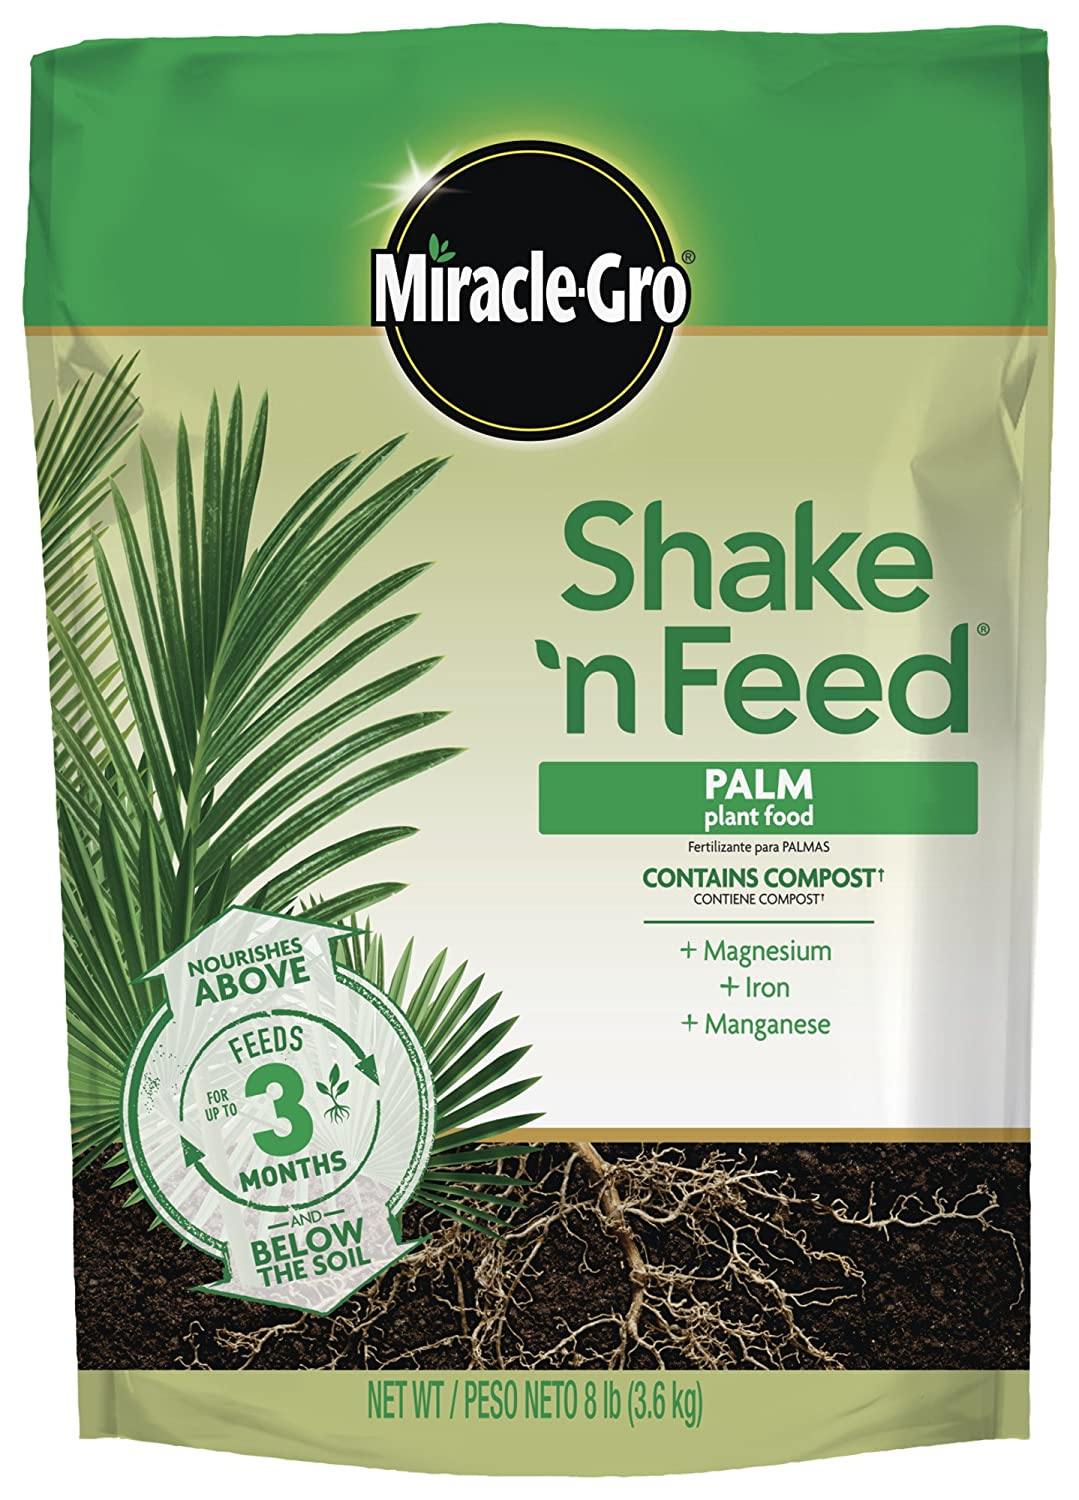 Amazon.com : Miracle-Gro 3003010 8Lb Mg Palm Plant Food, 8 LB : Garden & Outdoor